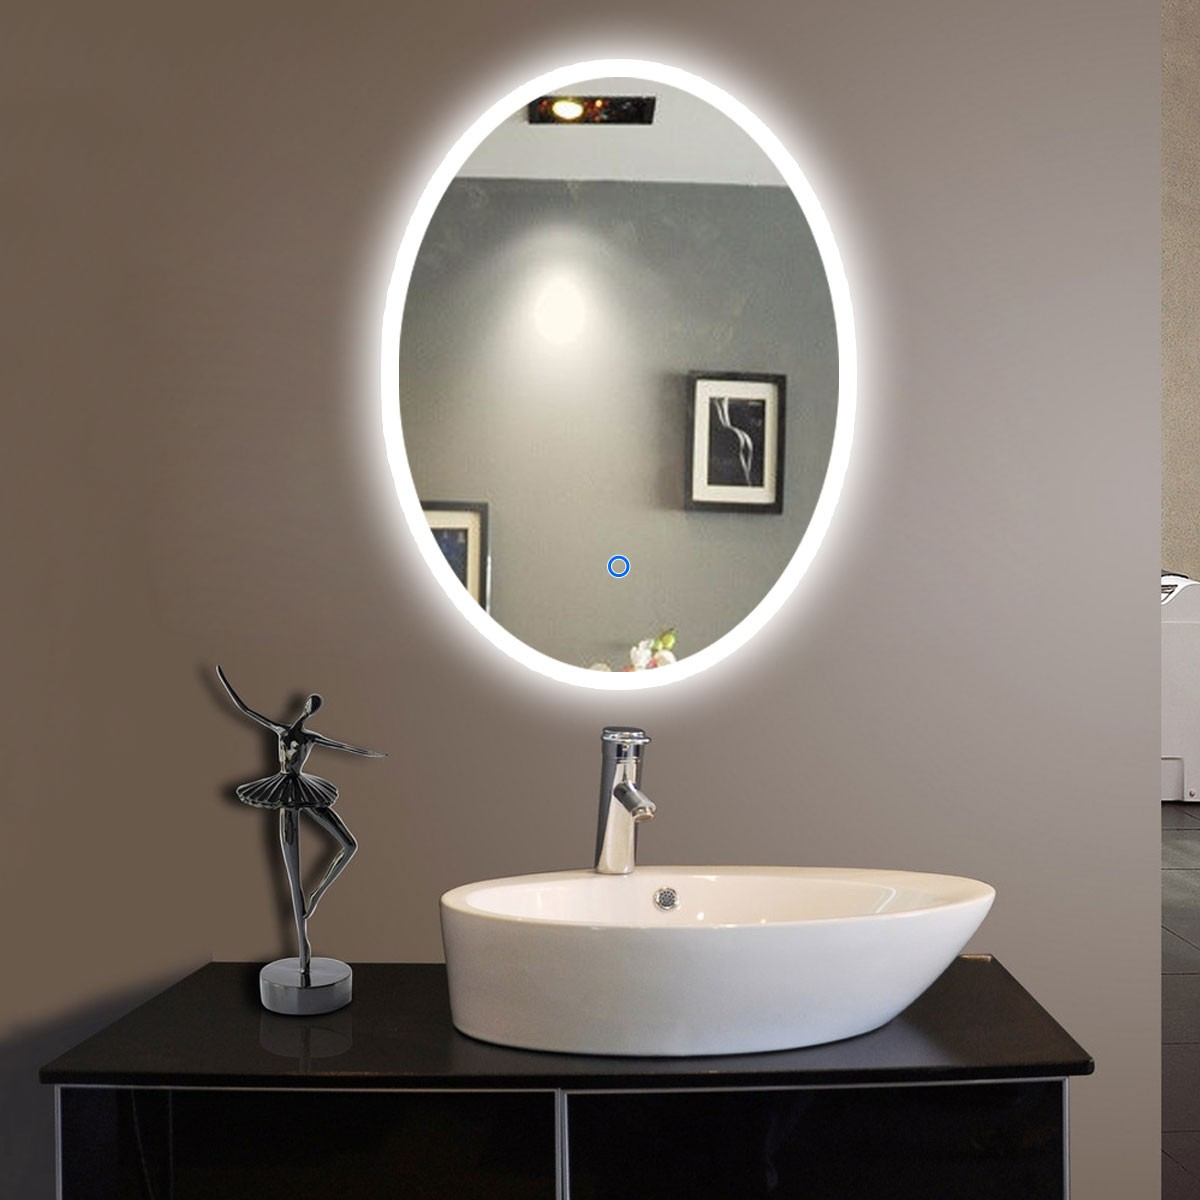 20 po x 28 po miroir led ovale argent de salle de bain avec l interrupteur tactile dk od cl054. Black Bedroom Furniture Sets. Home Design Ideas